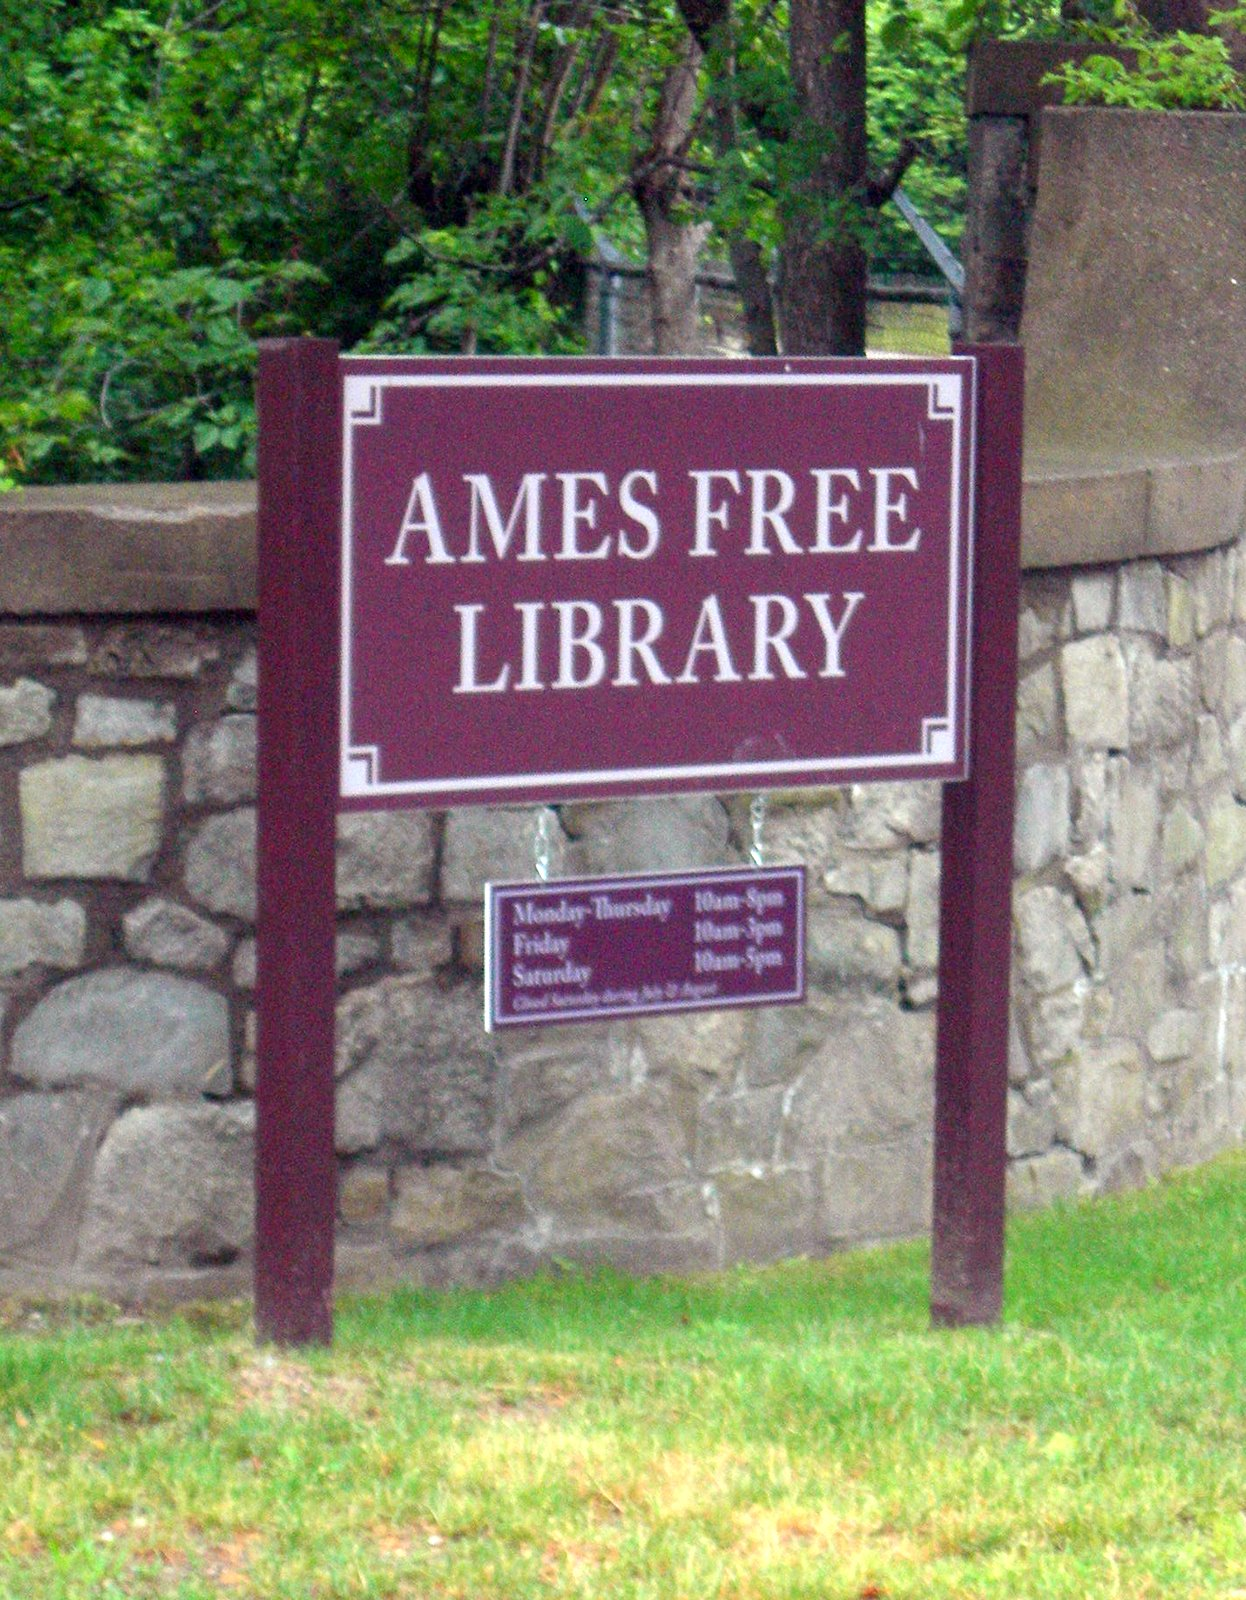 Ames Free Library